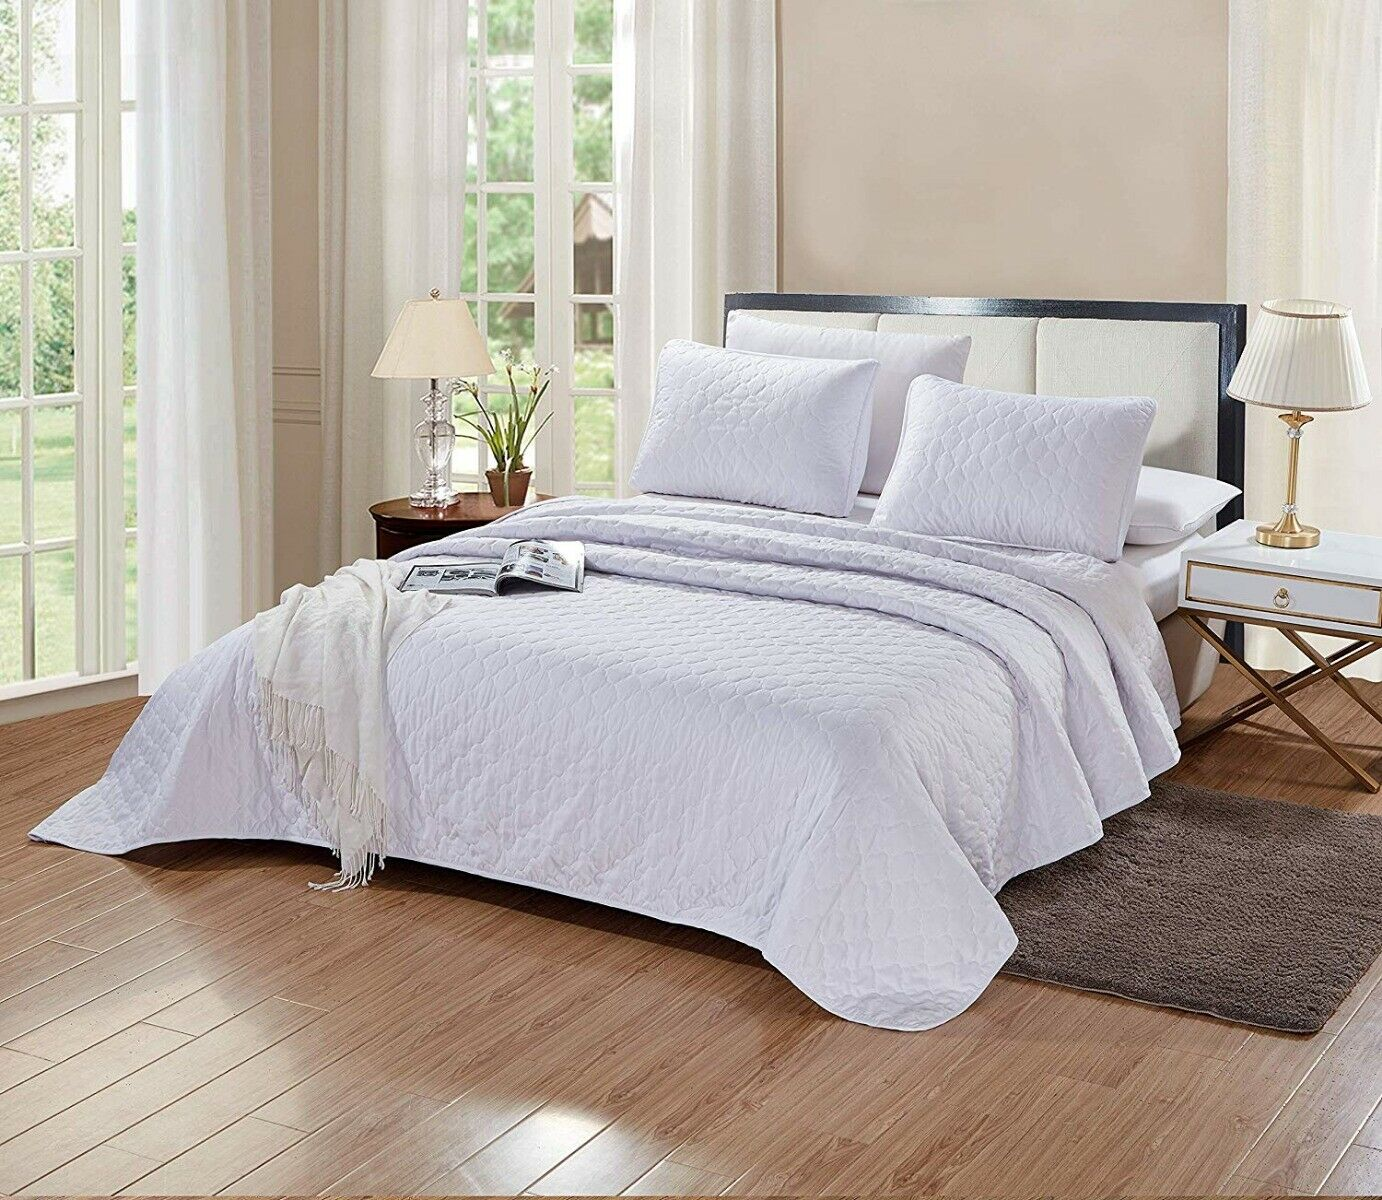 3 Pc Queen / Full Size Aria Quilt Set Solid White Bedspread